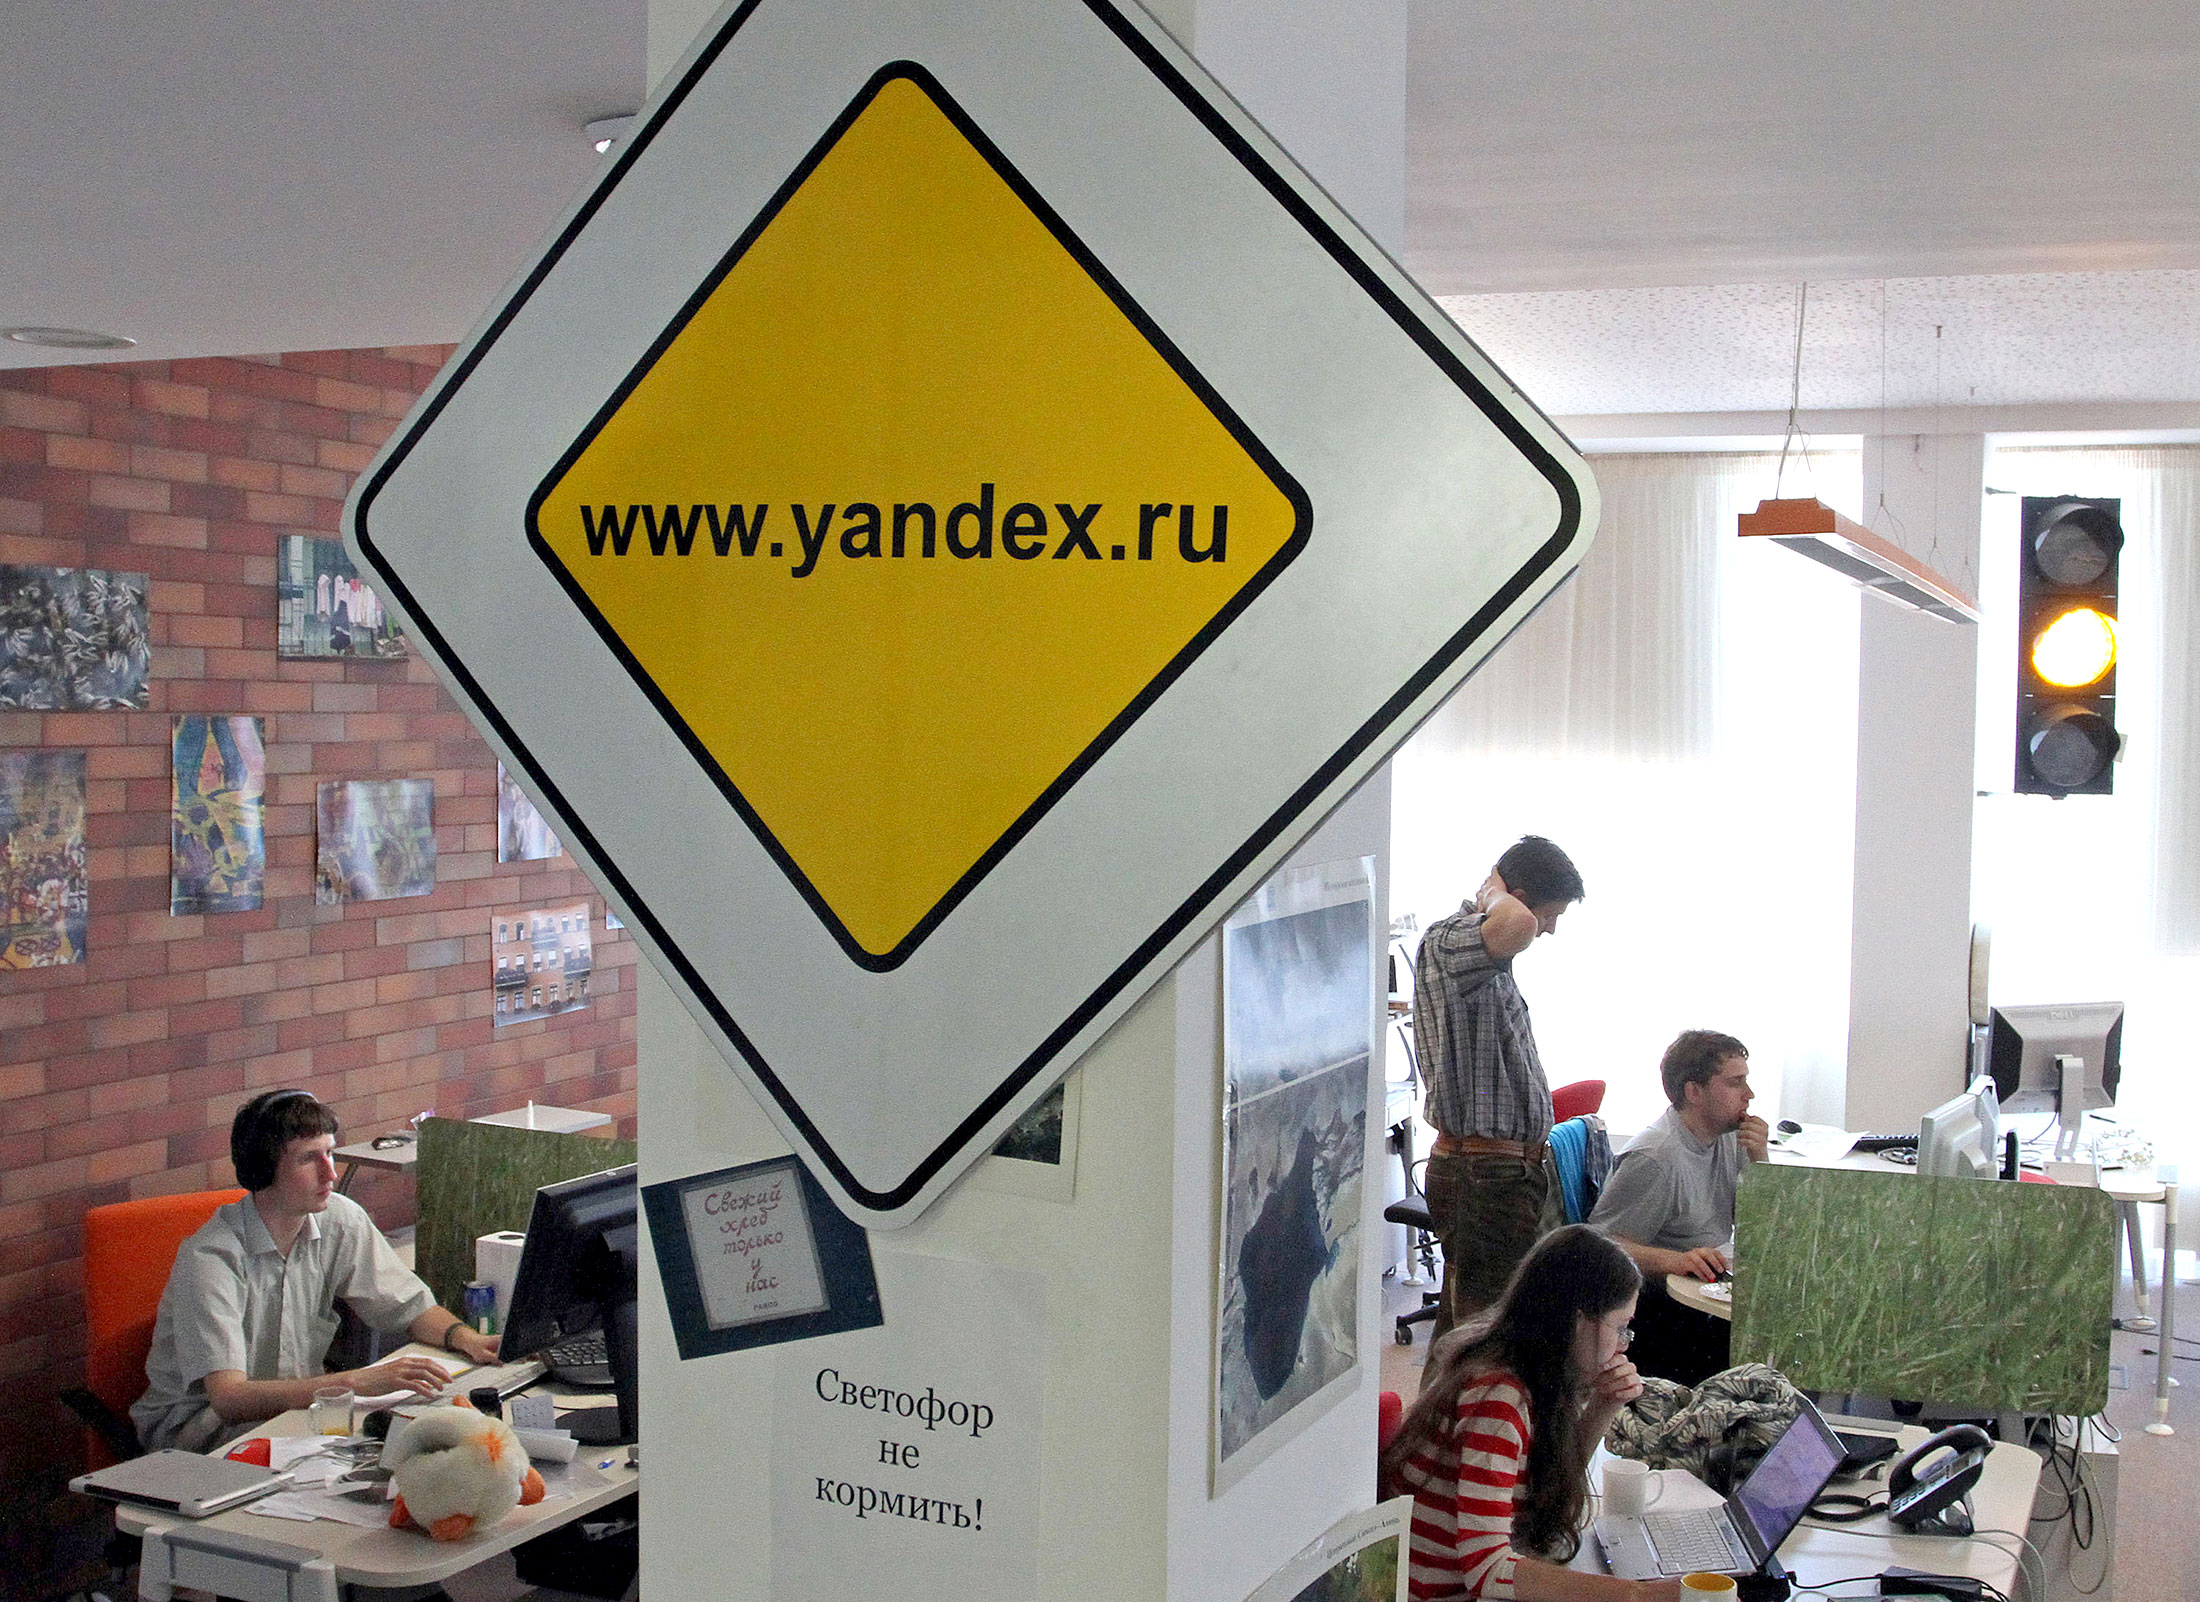 offices-of-yandex-nv-russias-most-popular-internet-search-engine